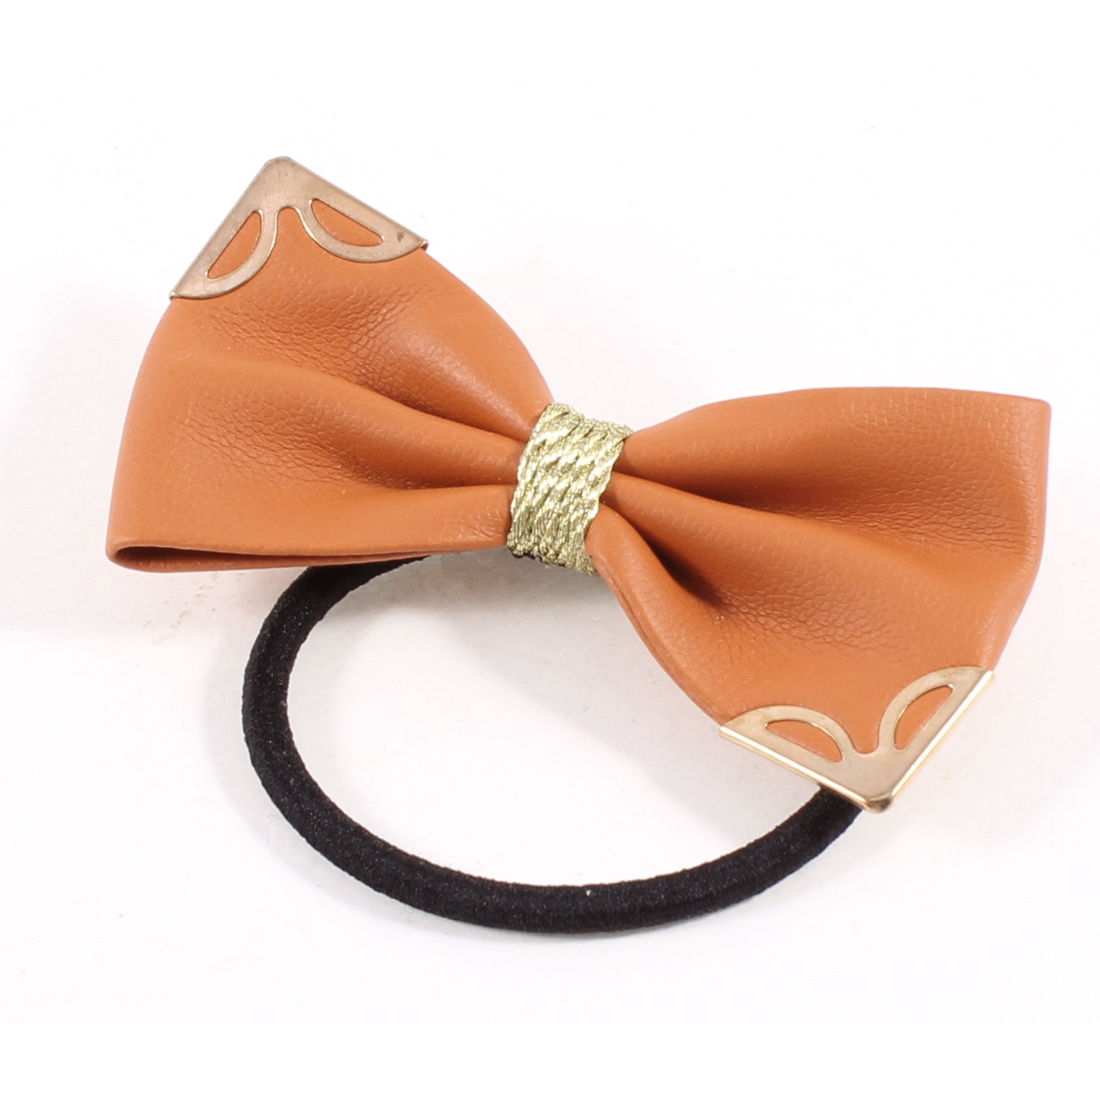 Metallic Detail Dark Orange Bowknot Stretchy Hair Rubber Band Ponytail Holder